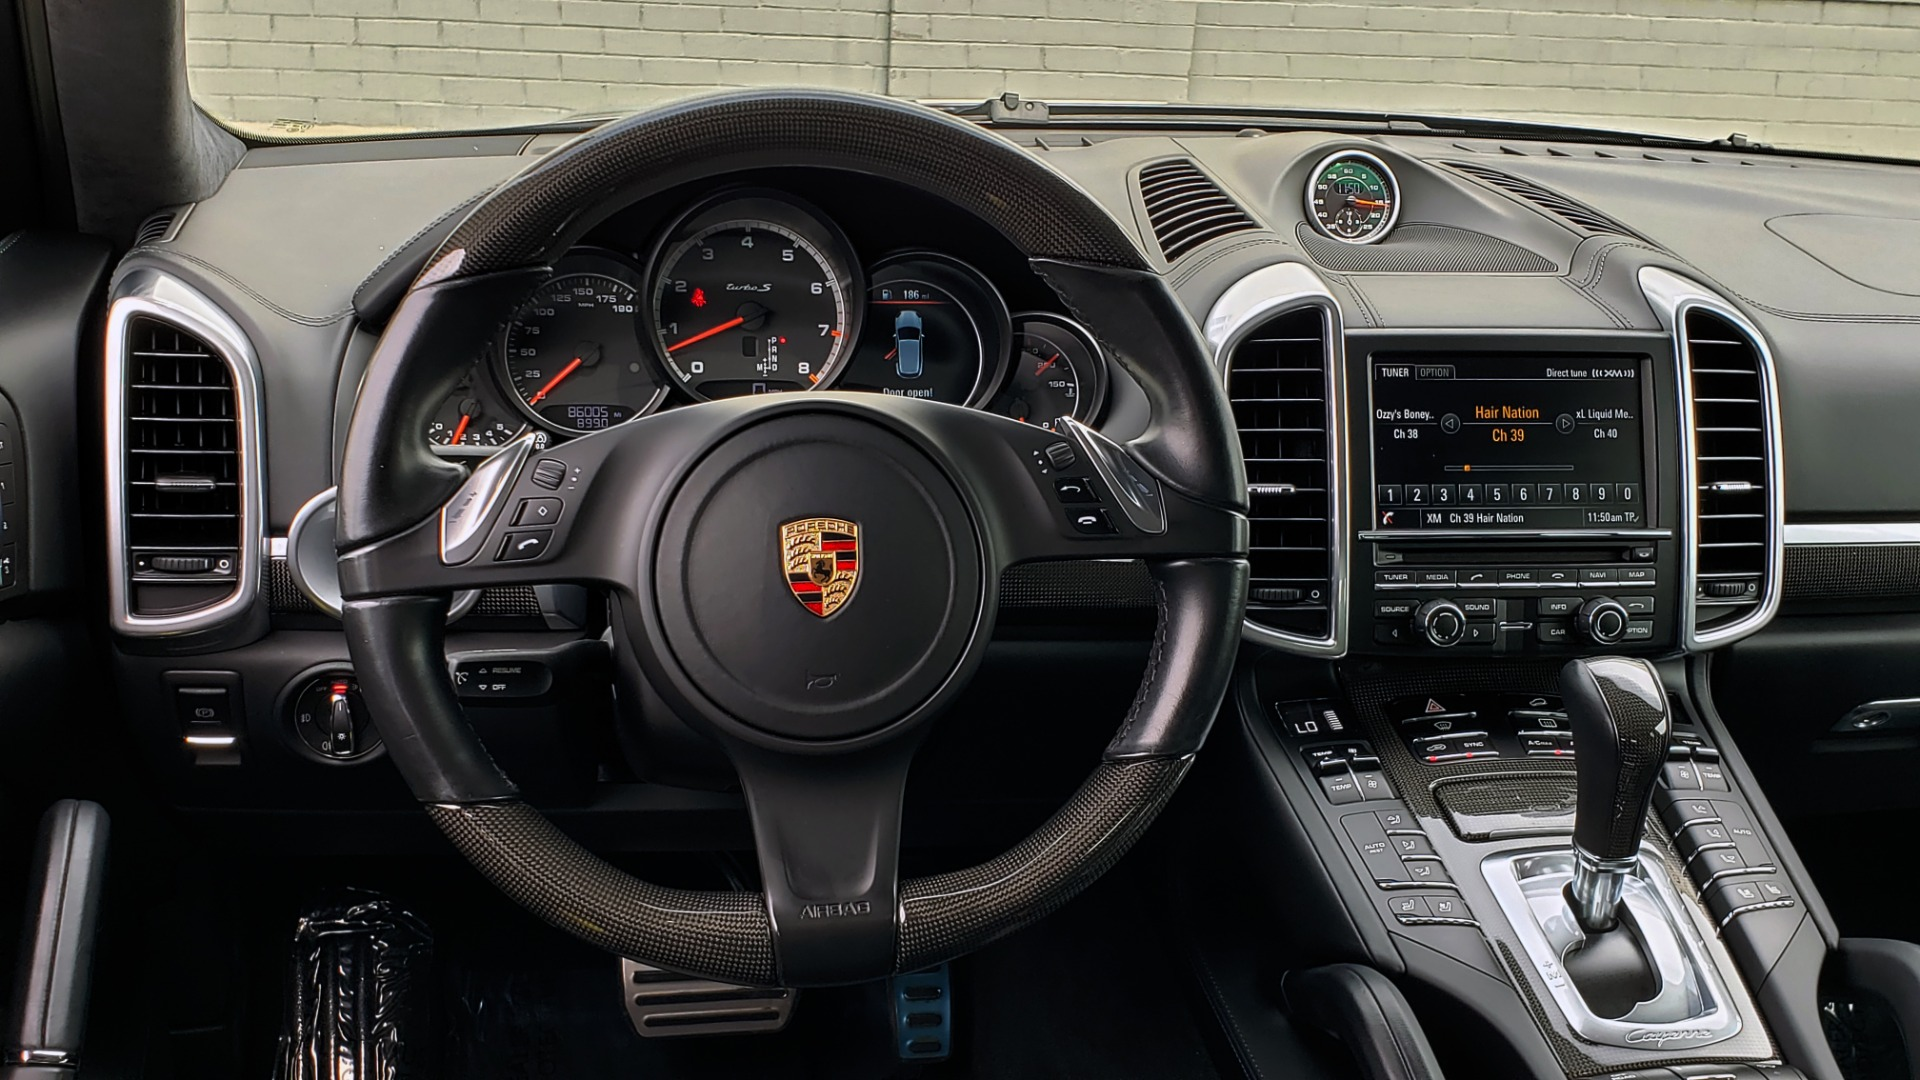 Used 2014 Porsche CAYENNE TURBO S / AWD / NAV / BOSE / PANO-ROOF / LCA / REARVIEW for sale Sold at Formula Imports in Charlotte NC 28227 46